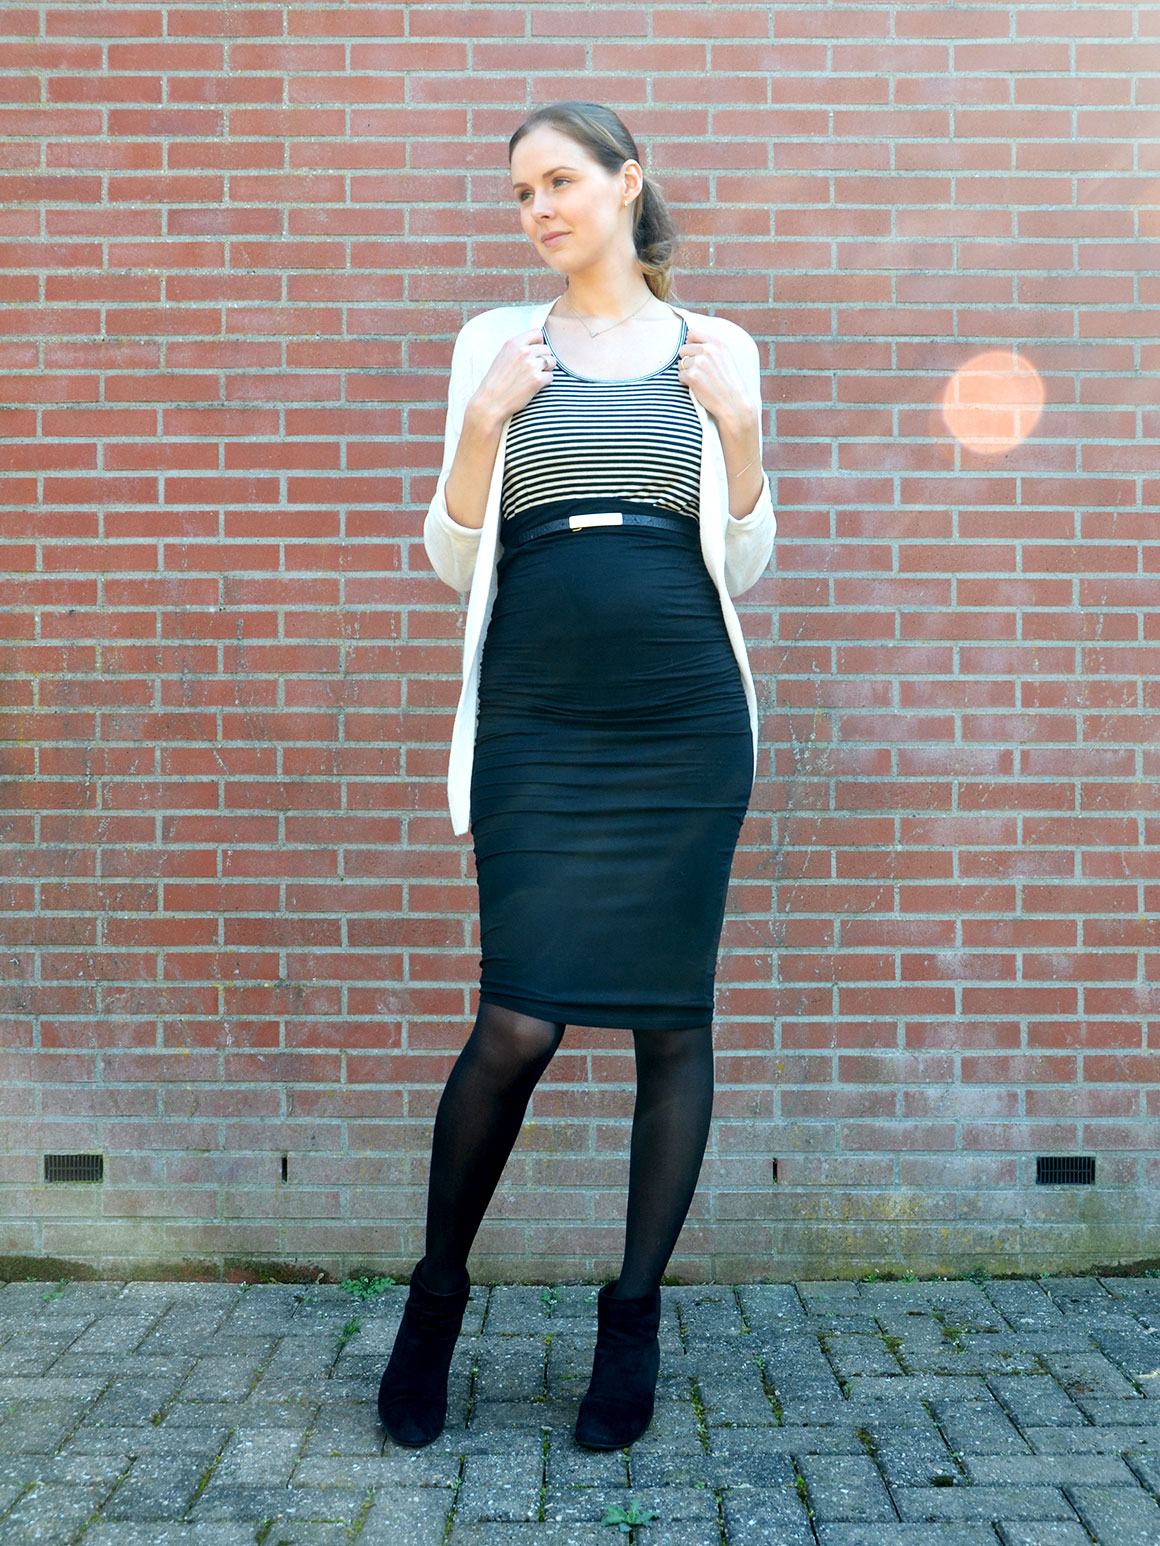 Outfit: Pencil skirt